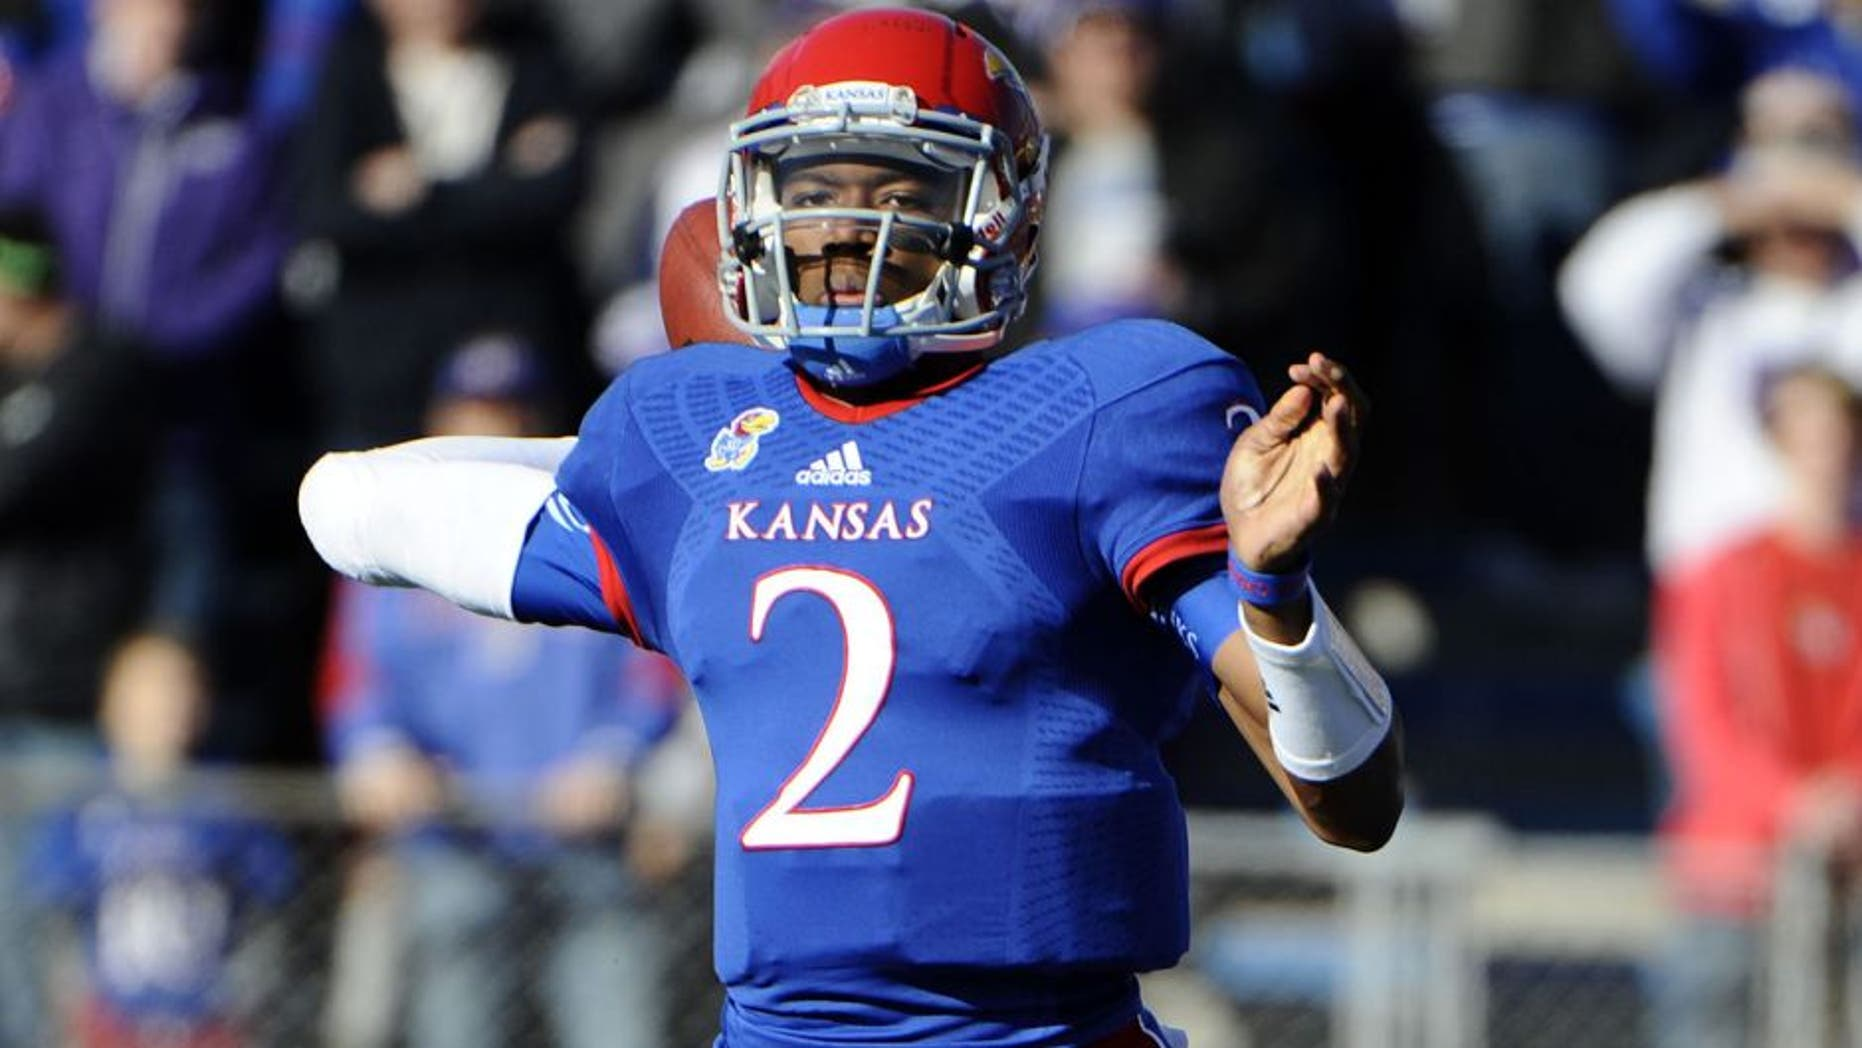 Nov 30, 2013; Lawrence, KS, USA; Kansas Jayhawks quarterback Montell Cozart (2) throws a pass against the Kansas State Wildcats in the first half at Memorial Stadium. Mandatory Credit: John Rieger-USA TODAY Sports